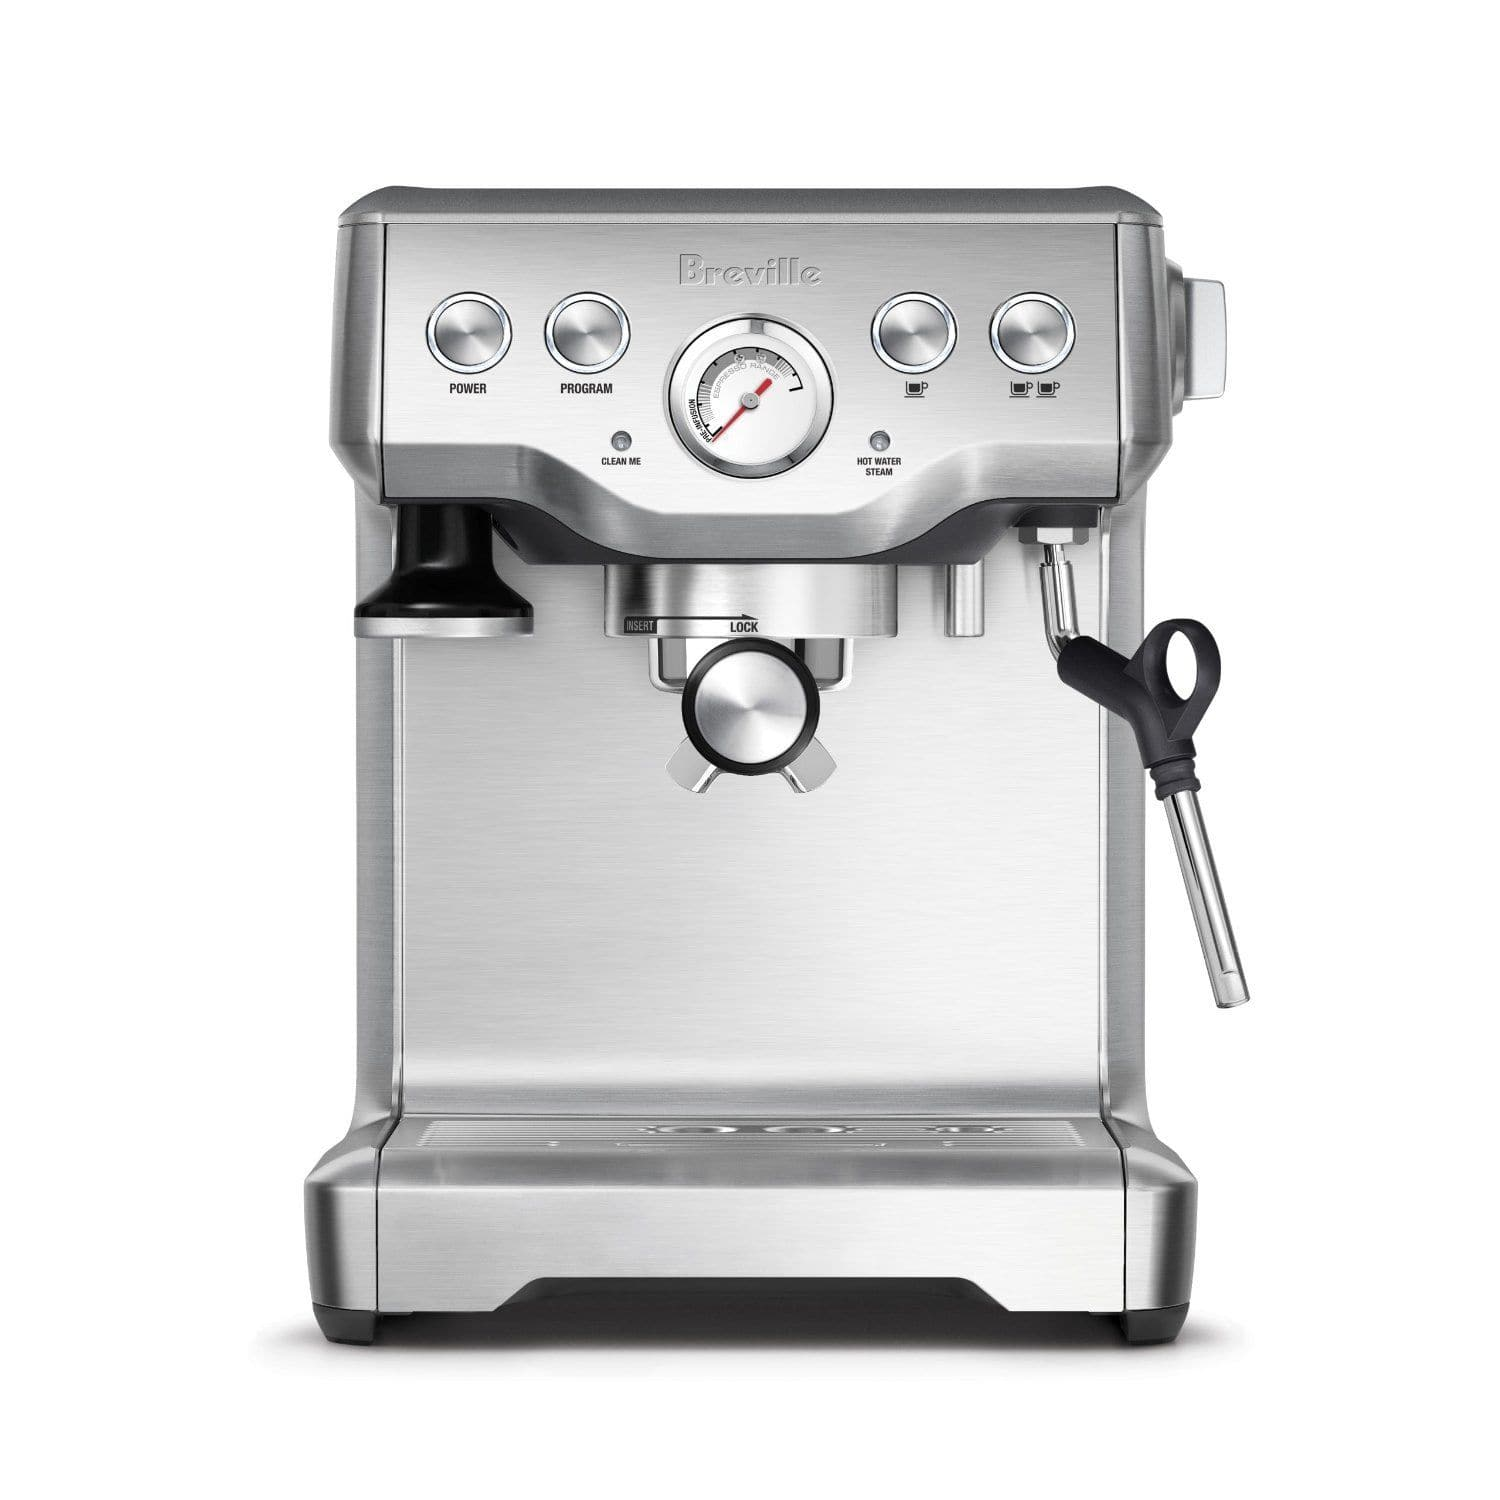 eBay: Breville BES840 The Infuser Espresso Machine - $379.99 Plus Free Shipping